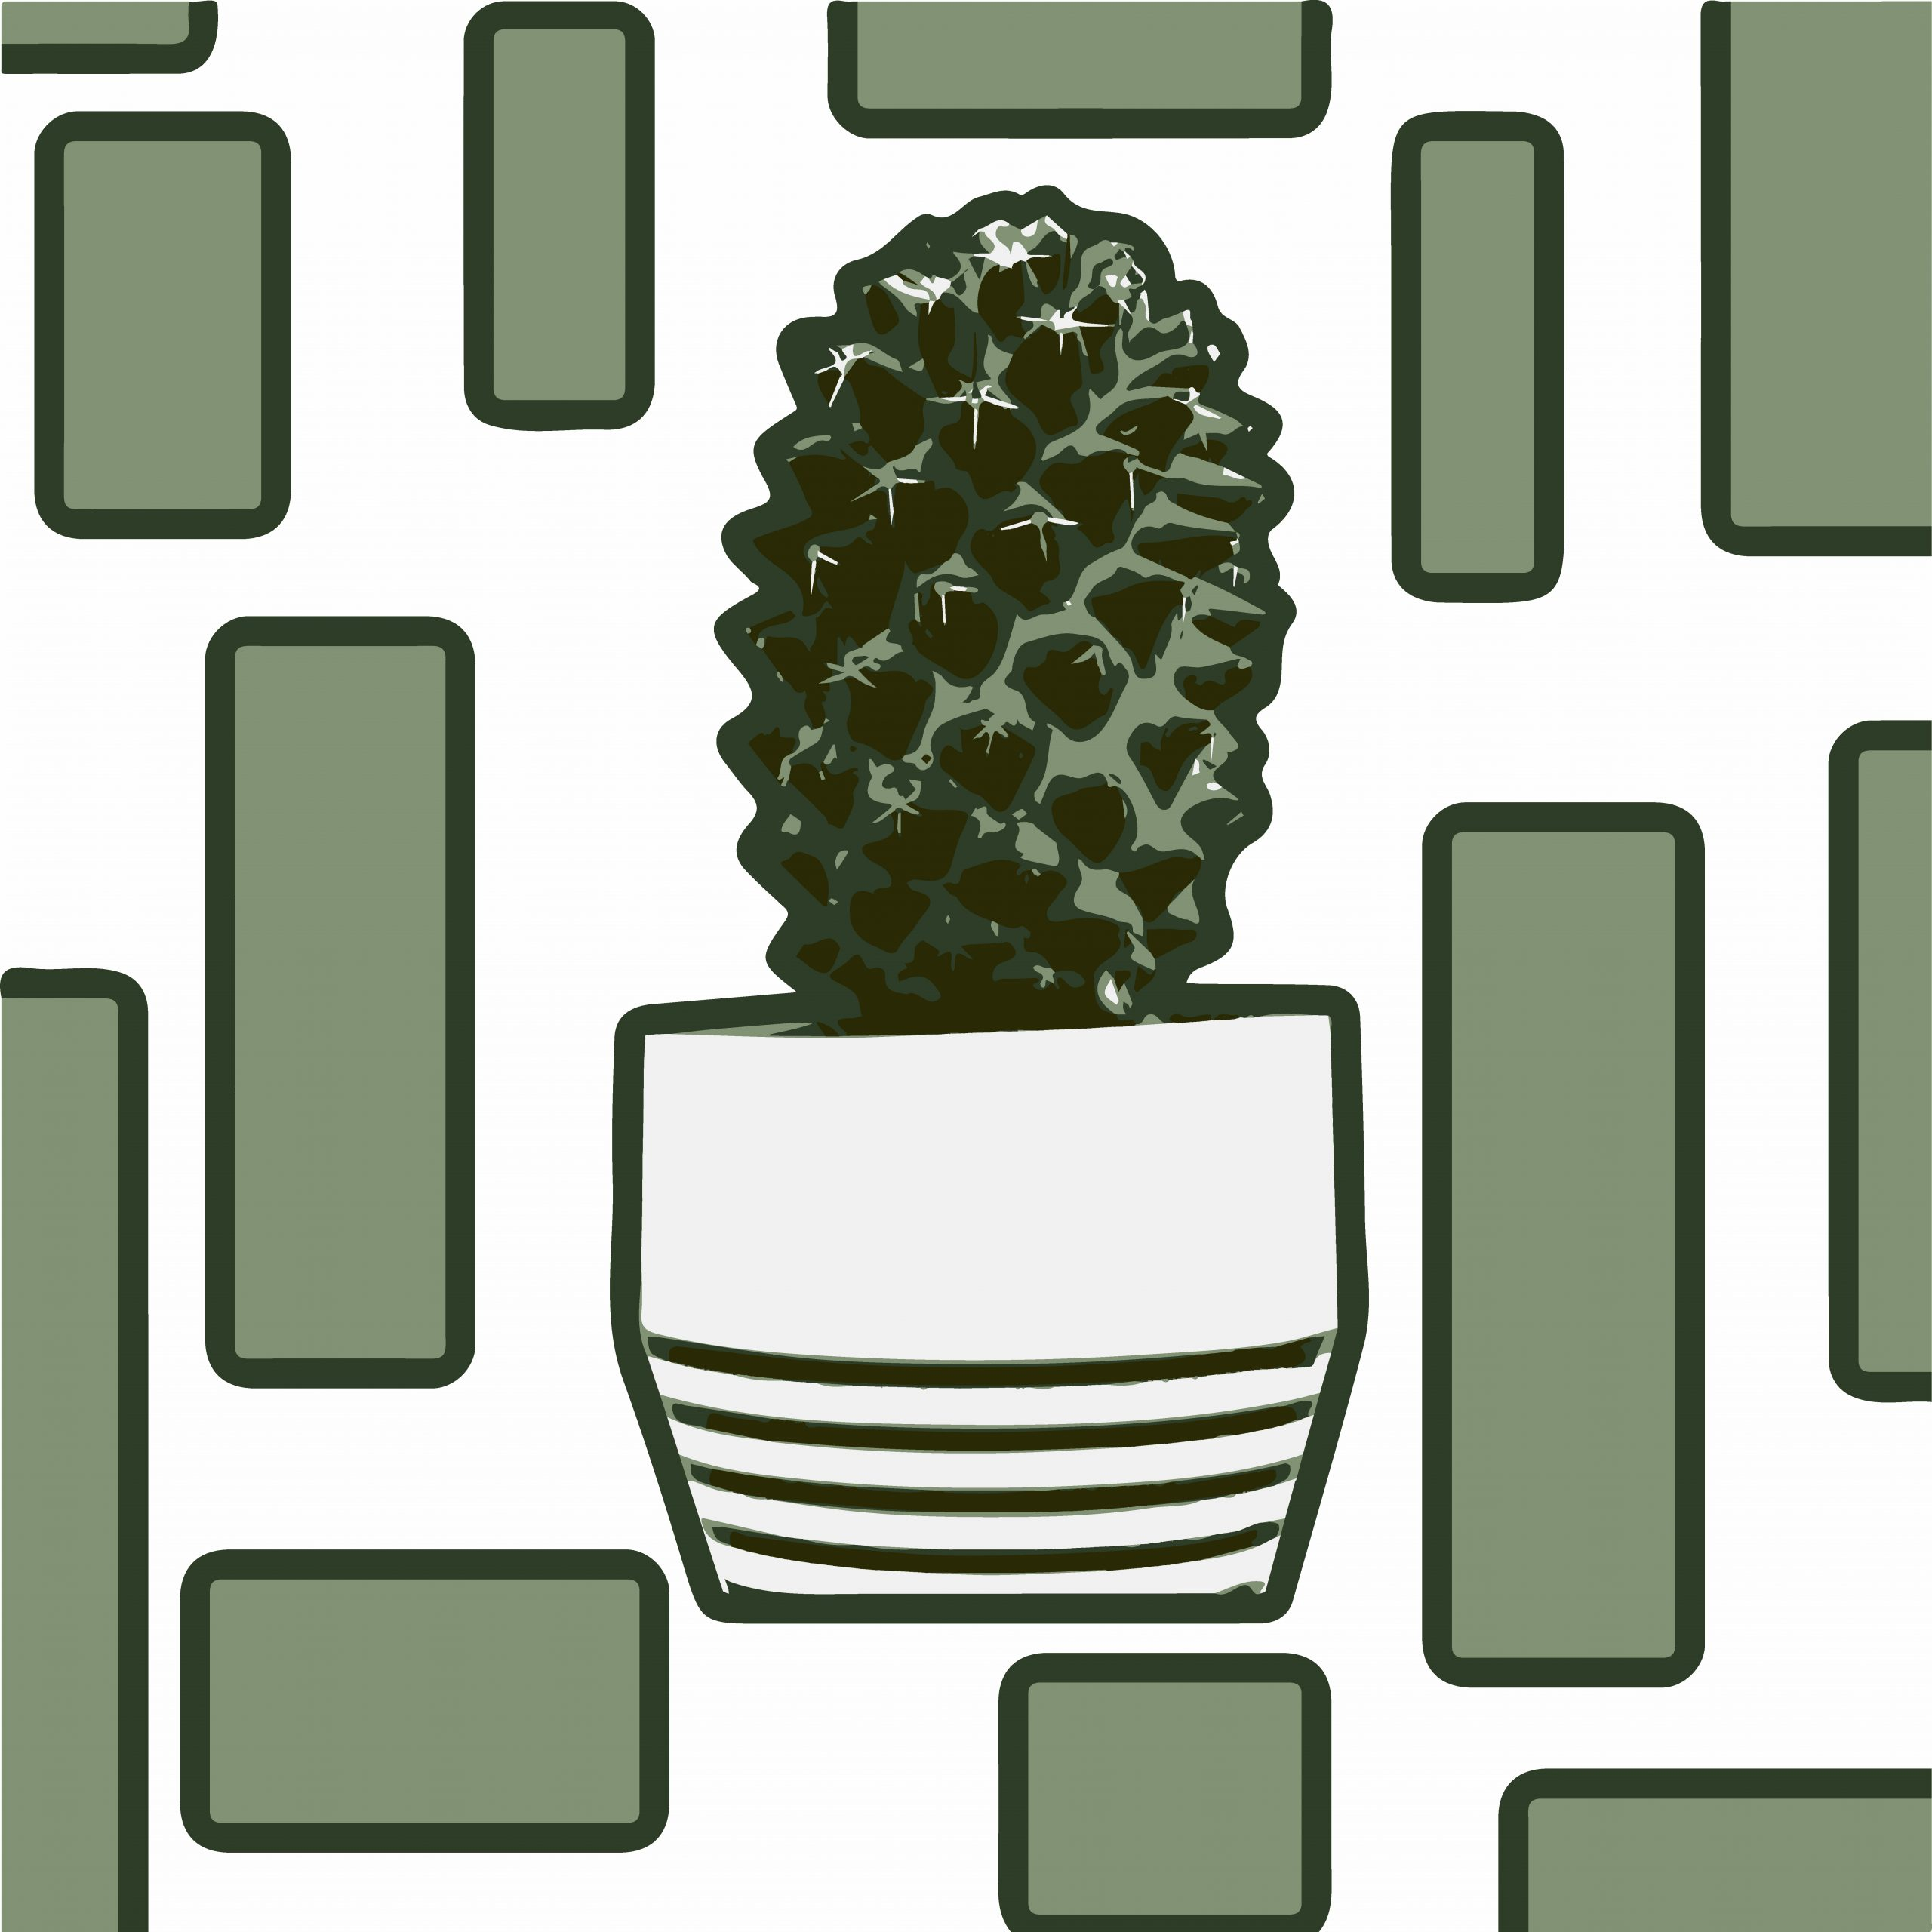 Cactus plant illustration